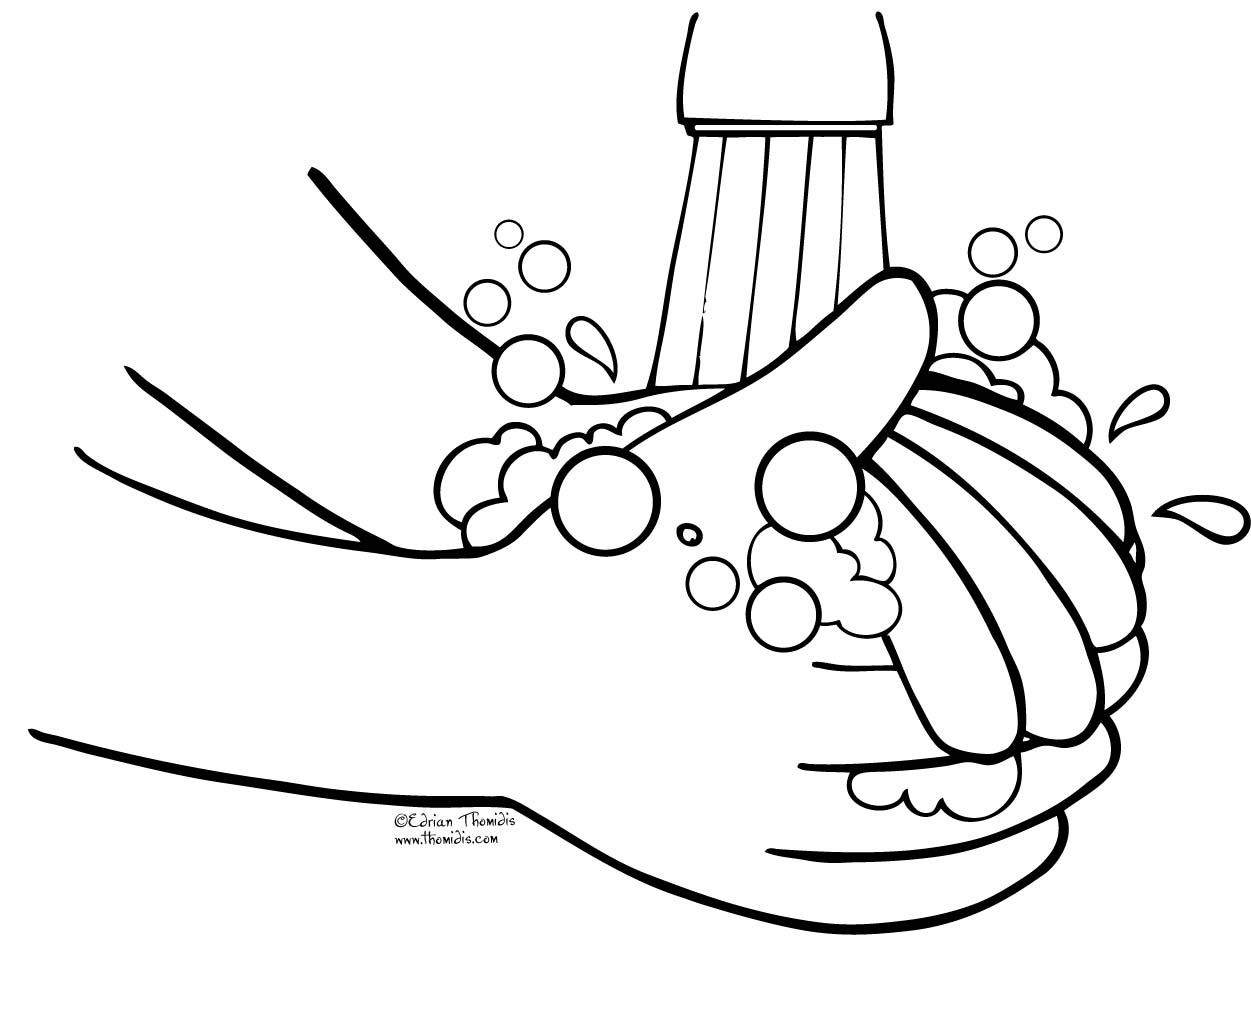 wash your hands coloring page printable